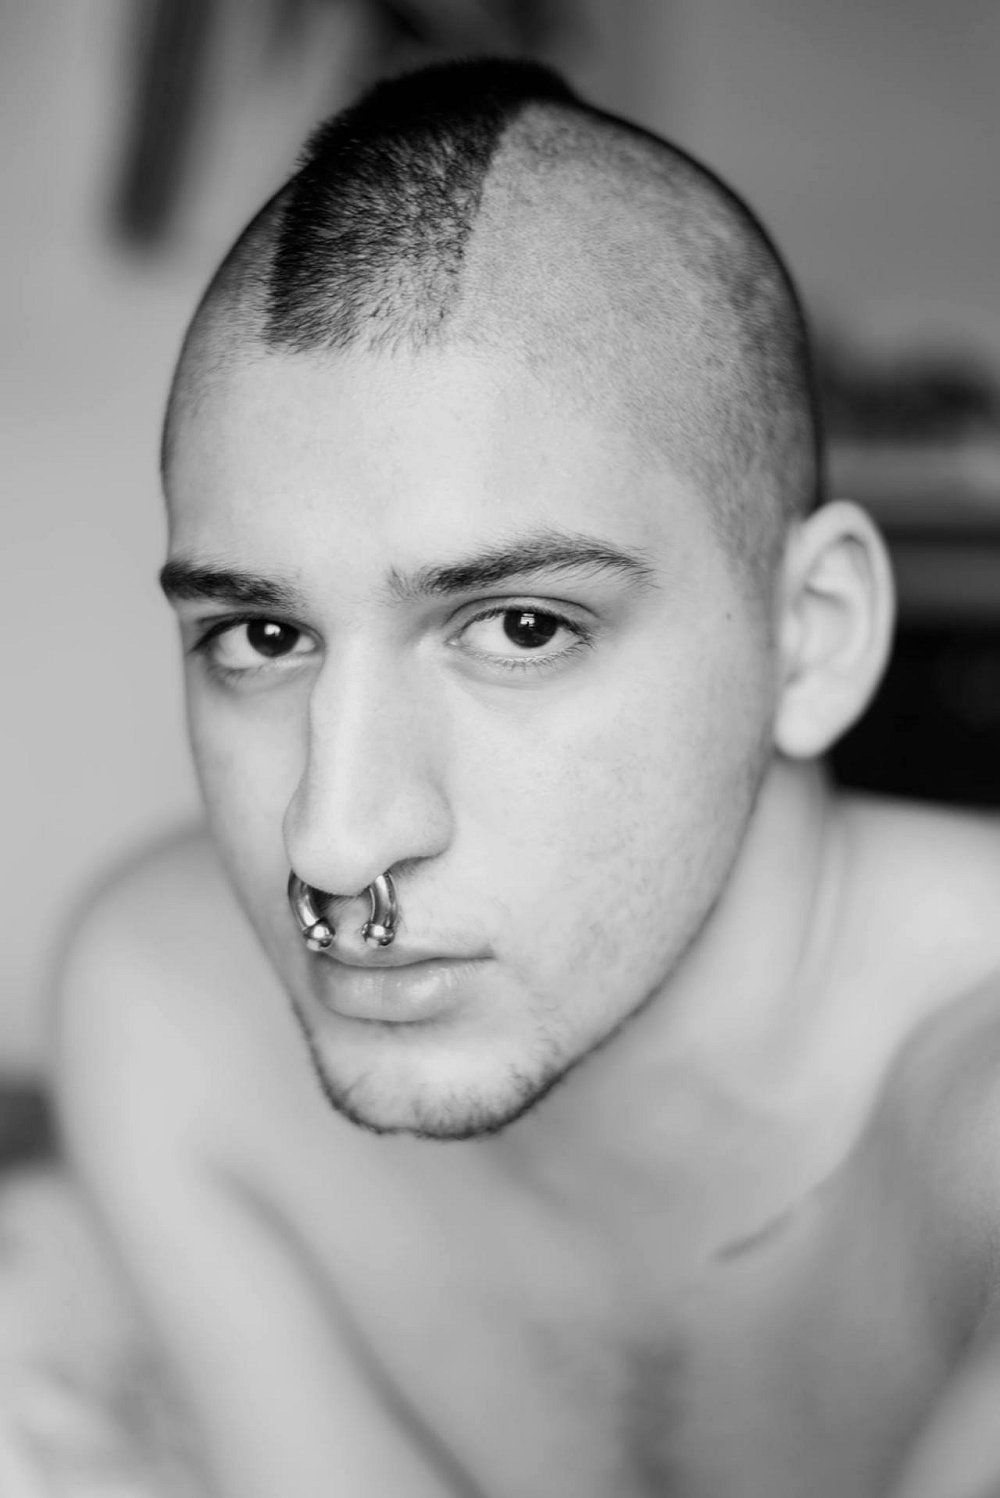 Cute nose piercing  This site is a collection of cool boys and guys expressing